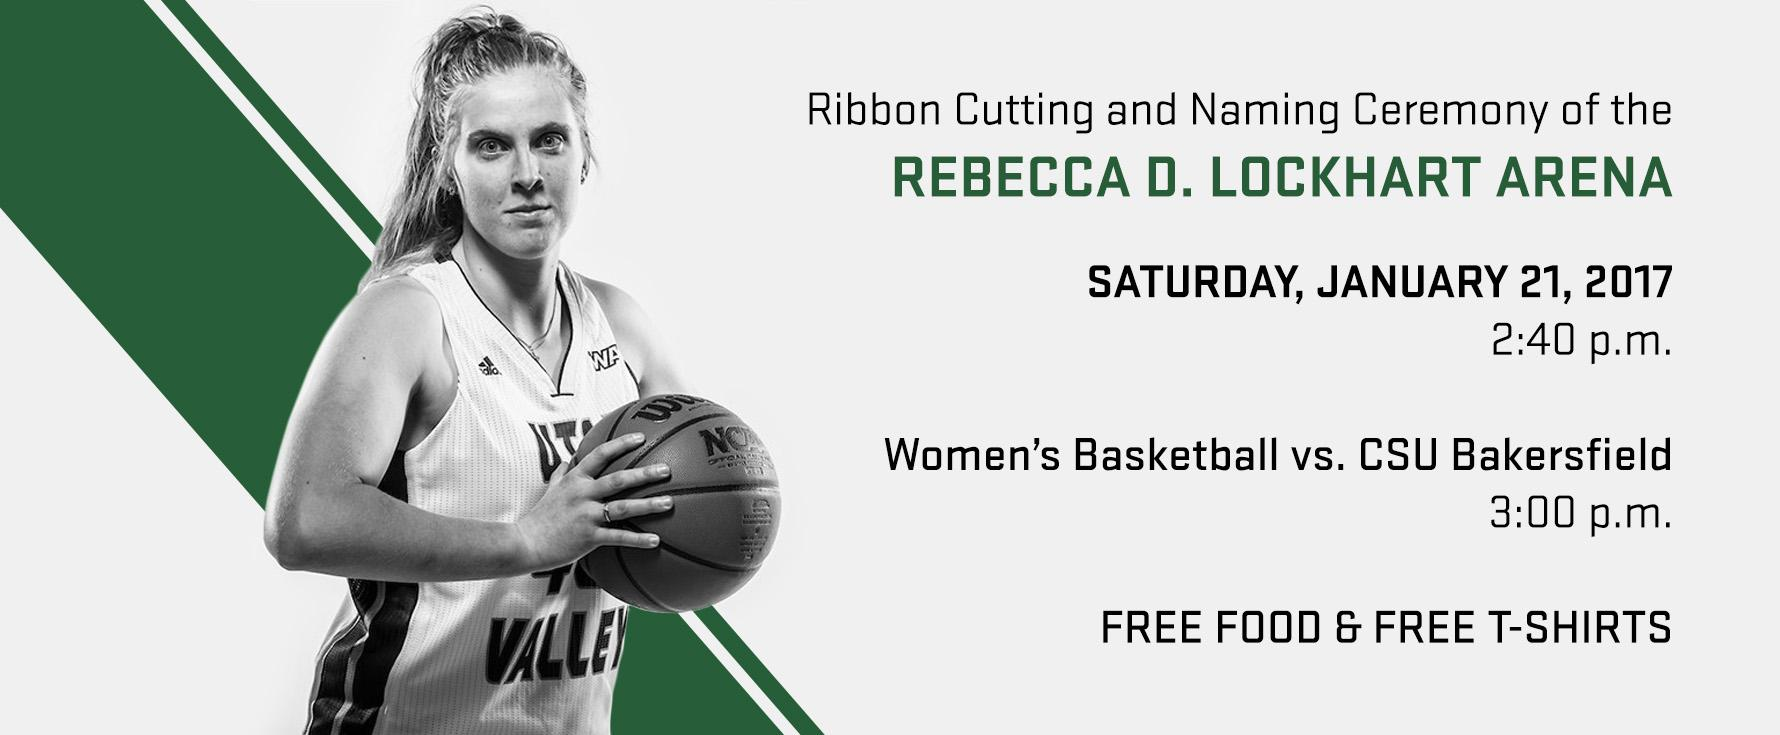 Ribbon cutting and naming ceremony of the Rebecca D. Lockhart Arena on Saturday, January 21, 2017 at 2:40 p.m. Women's basketball game at 3 p.m.